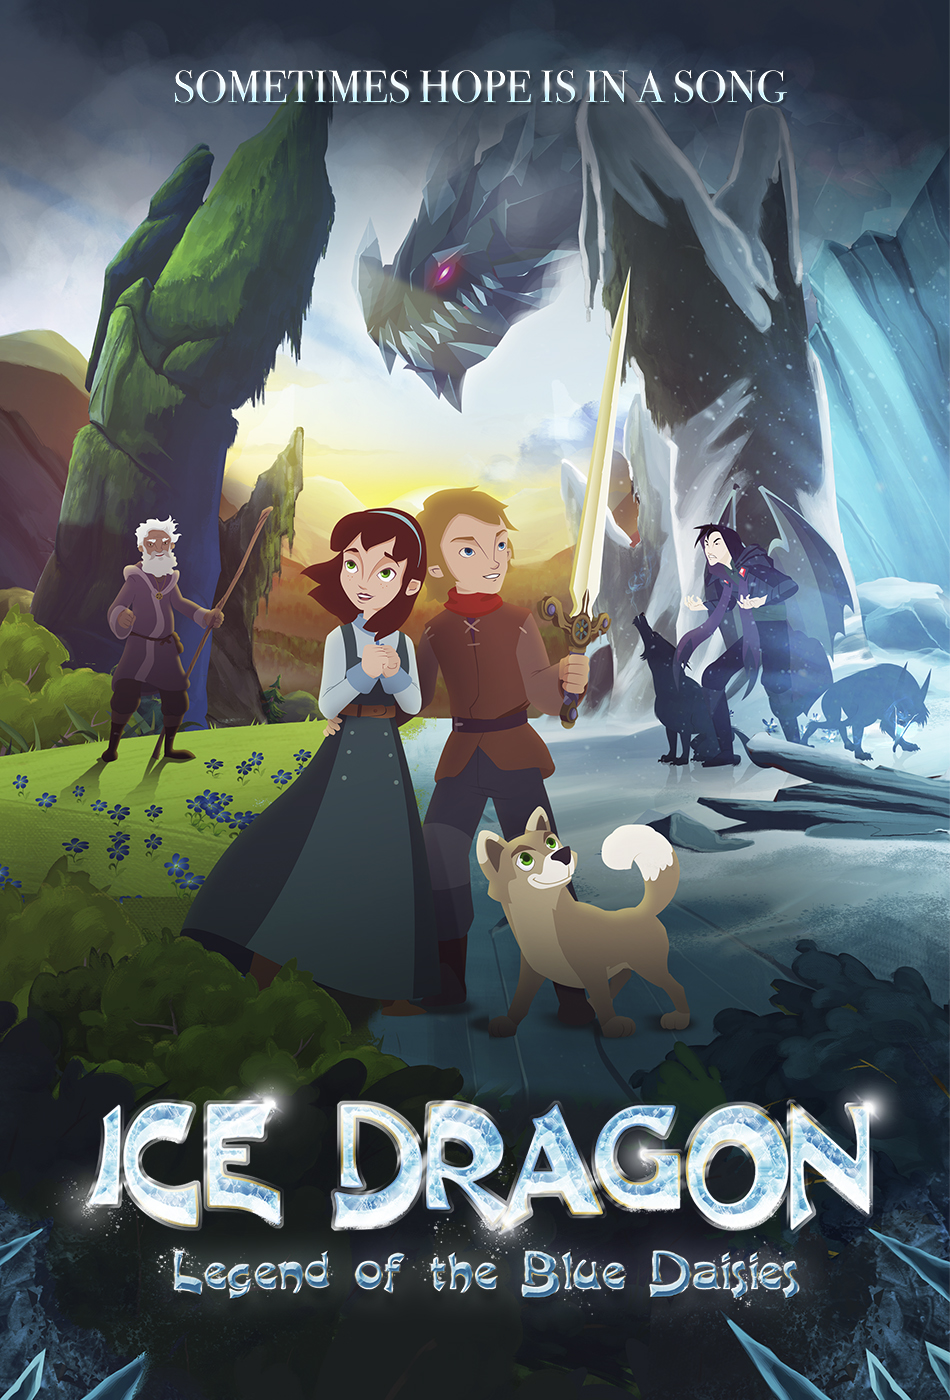 ICE DRAGON: LEGEND OF THE BLUE DAISIES (2018) online